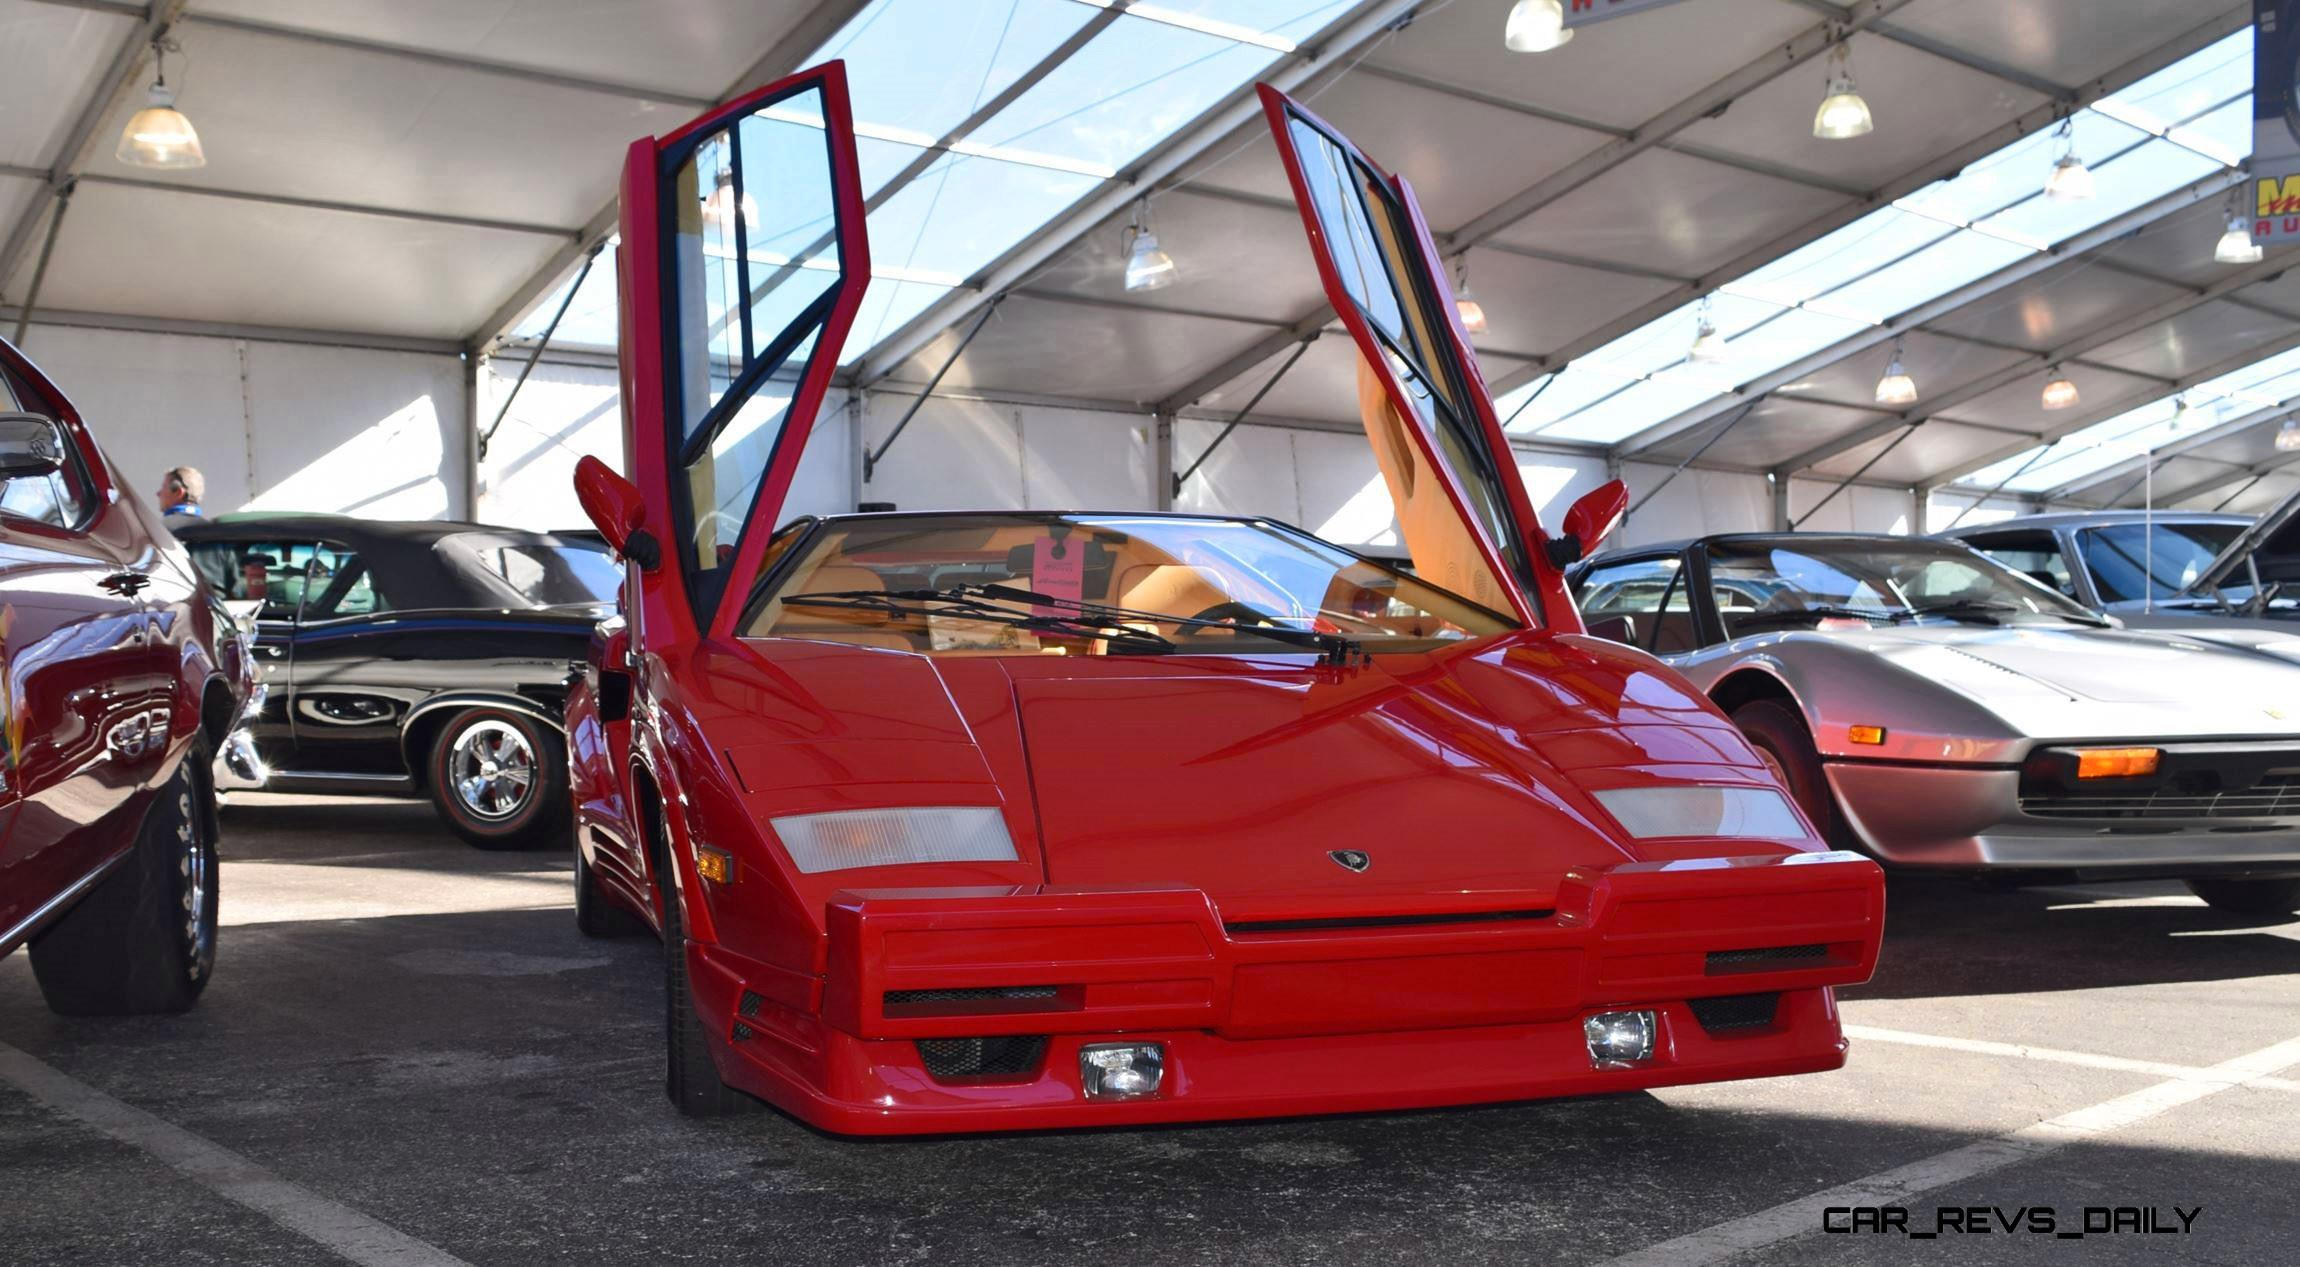 455hp 1989 Lamborghini Countach 25th Anniversary Edition